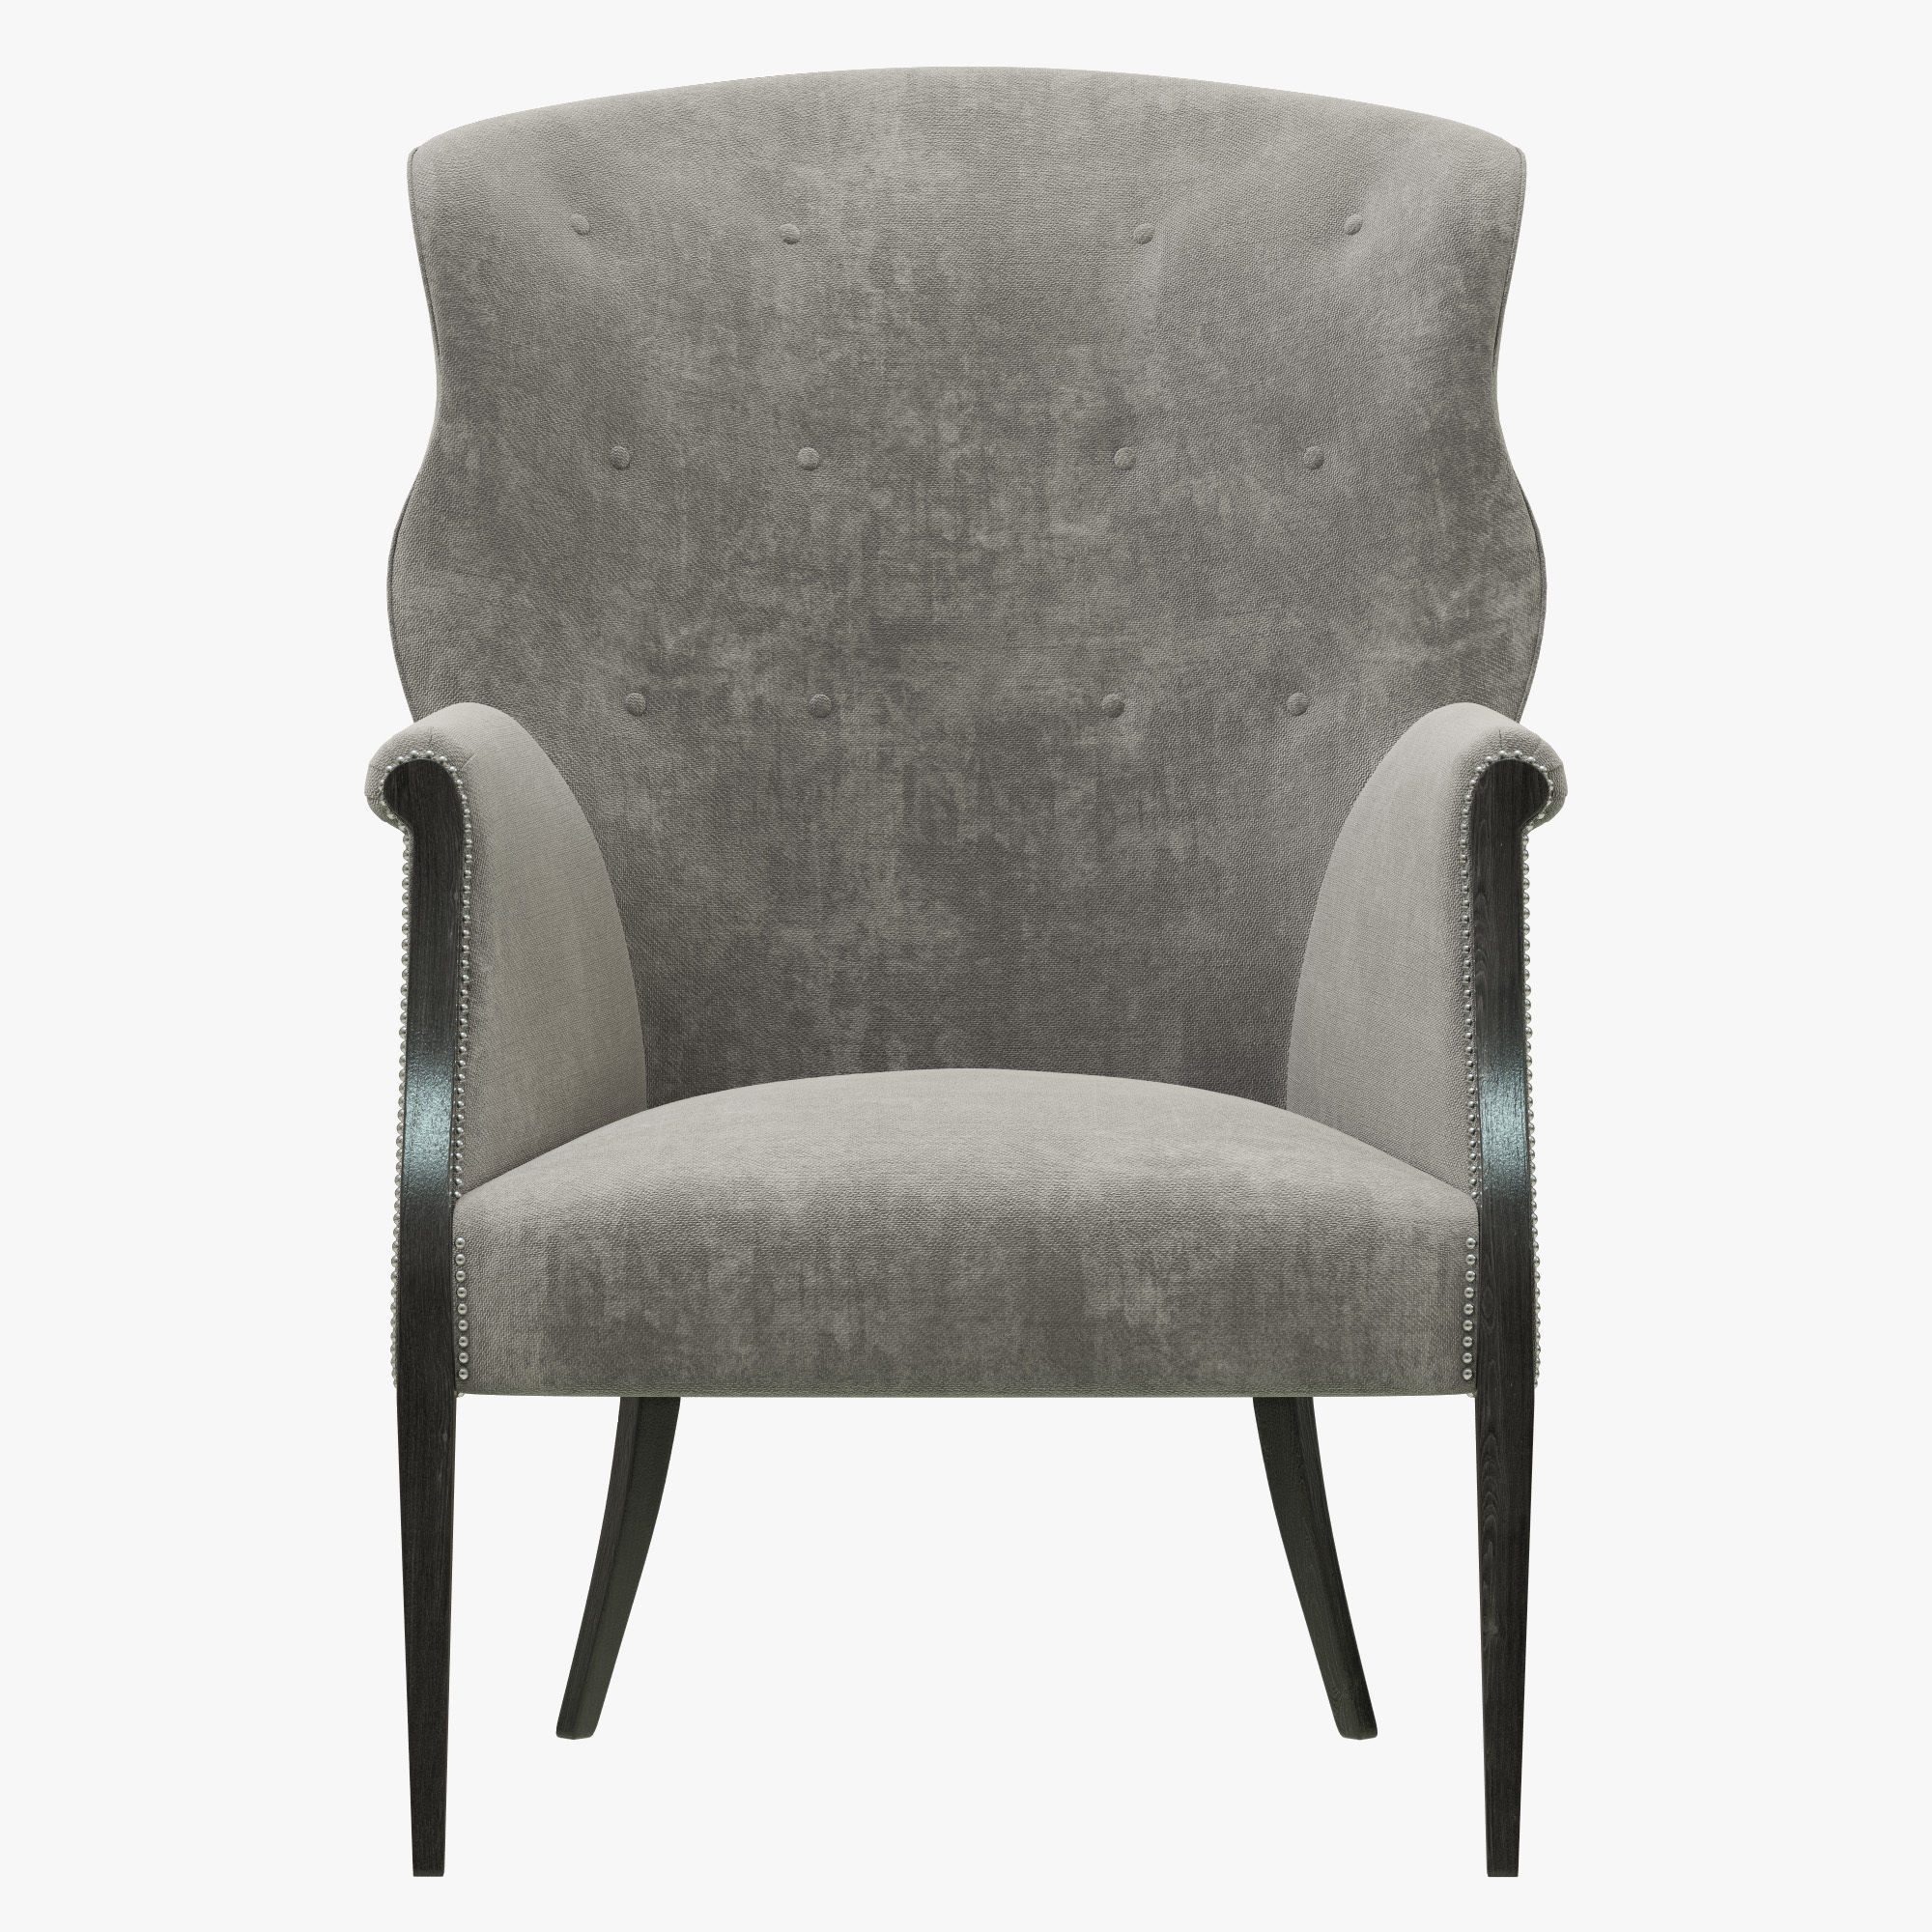 Gentil ... Restoration Hardware Edwardian Wingback Chair 3d Model Max Obj Mtl 3ds  Fbx 4 ...